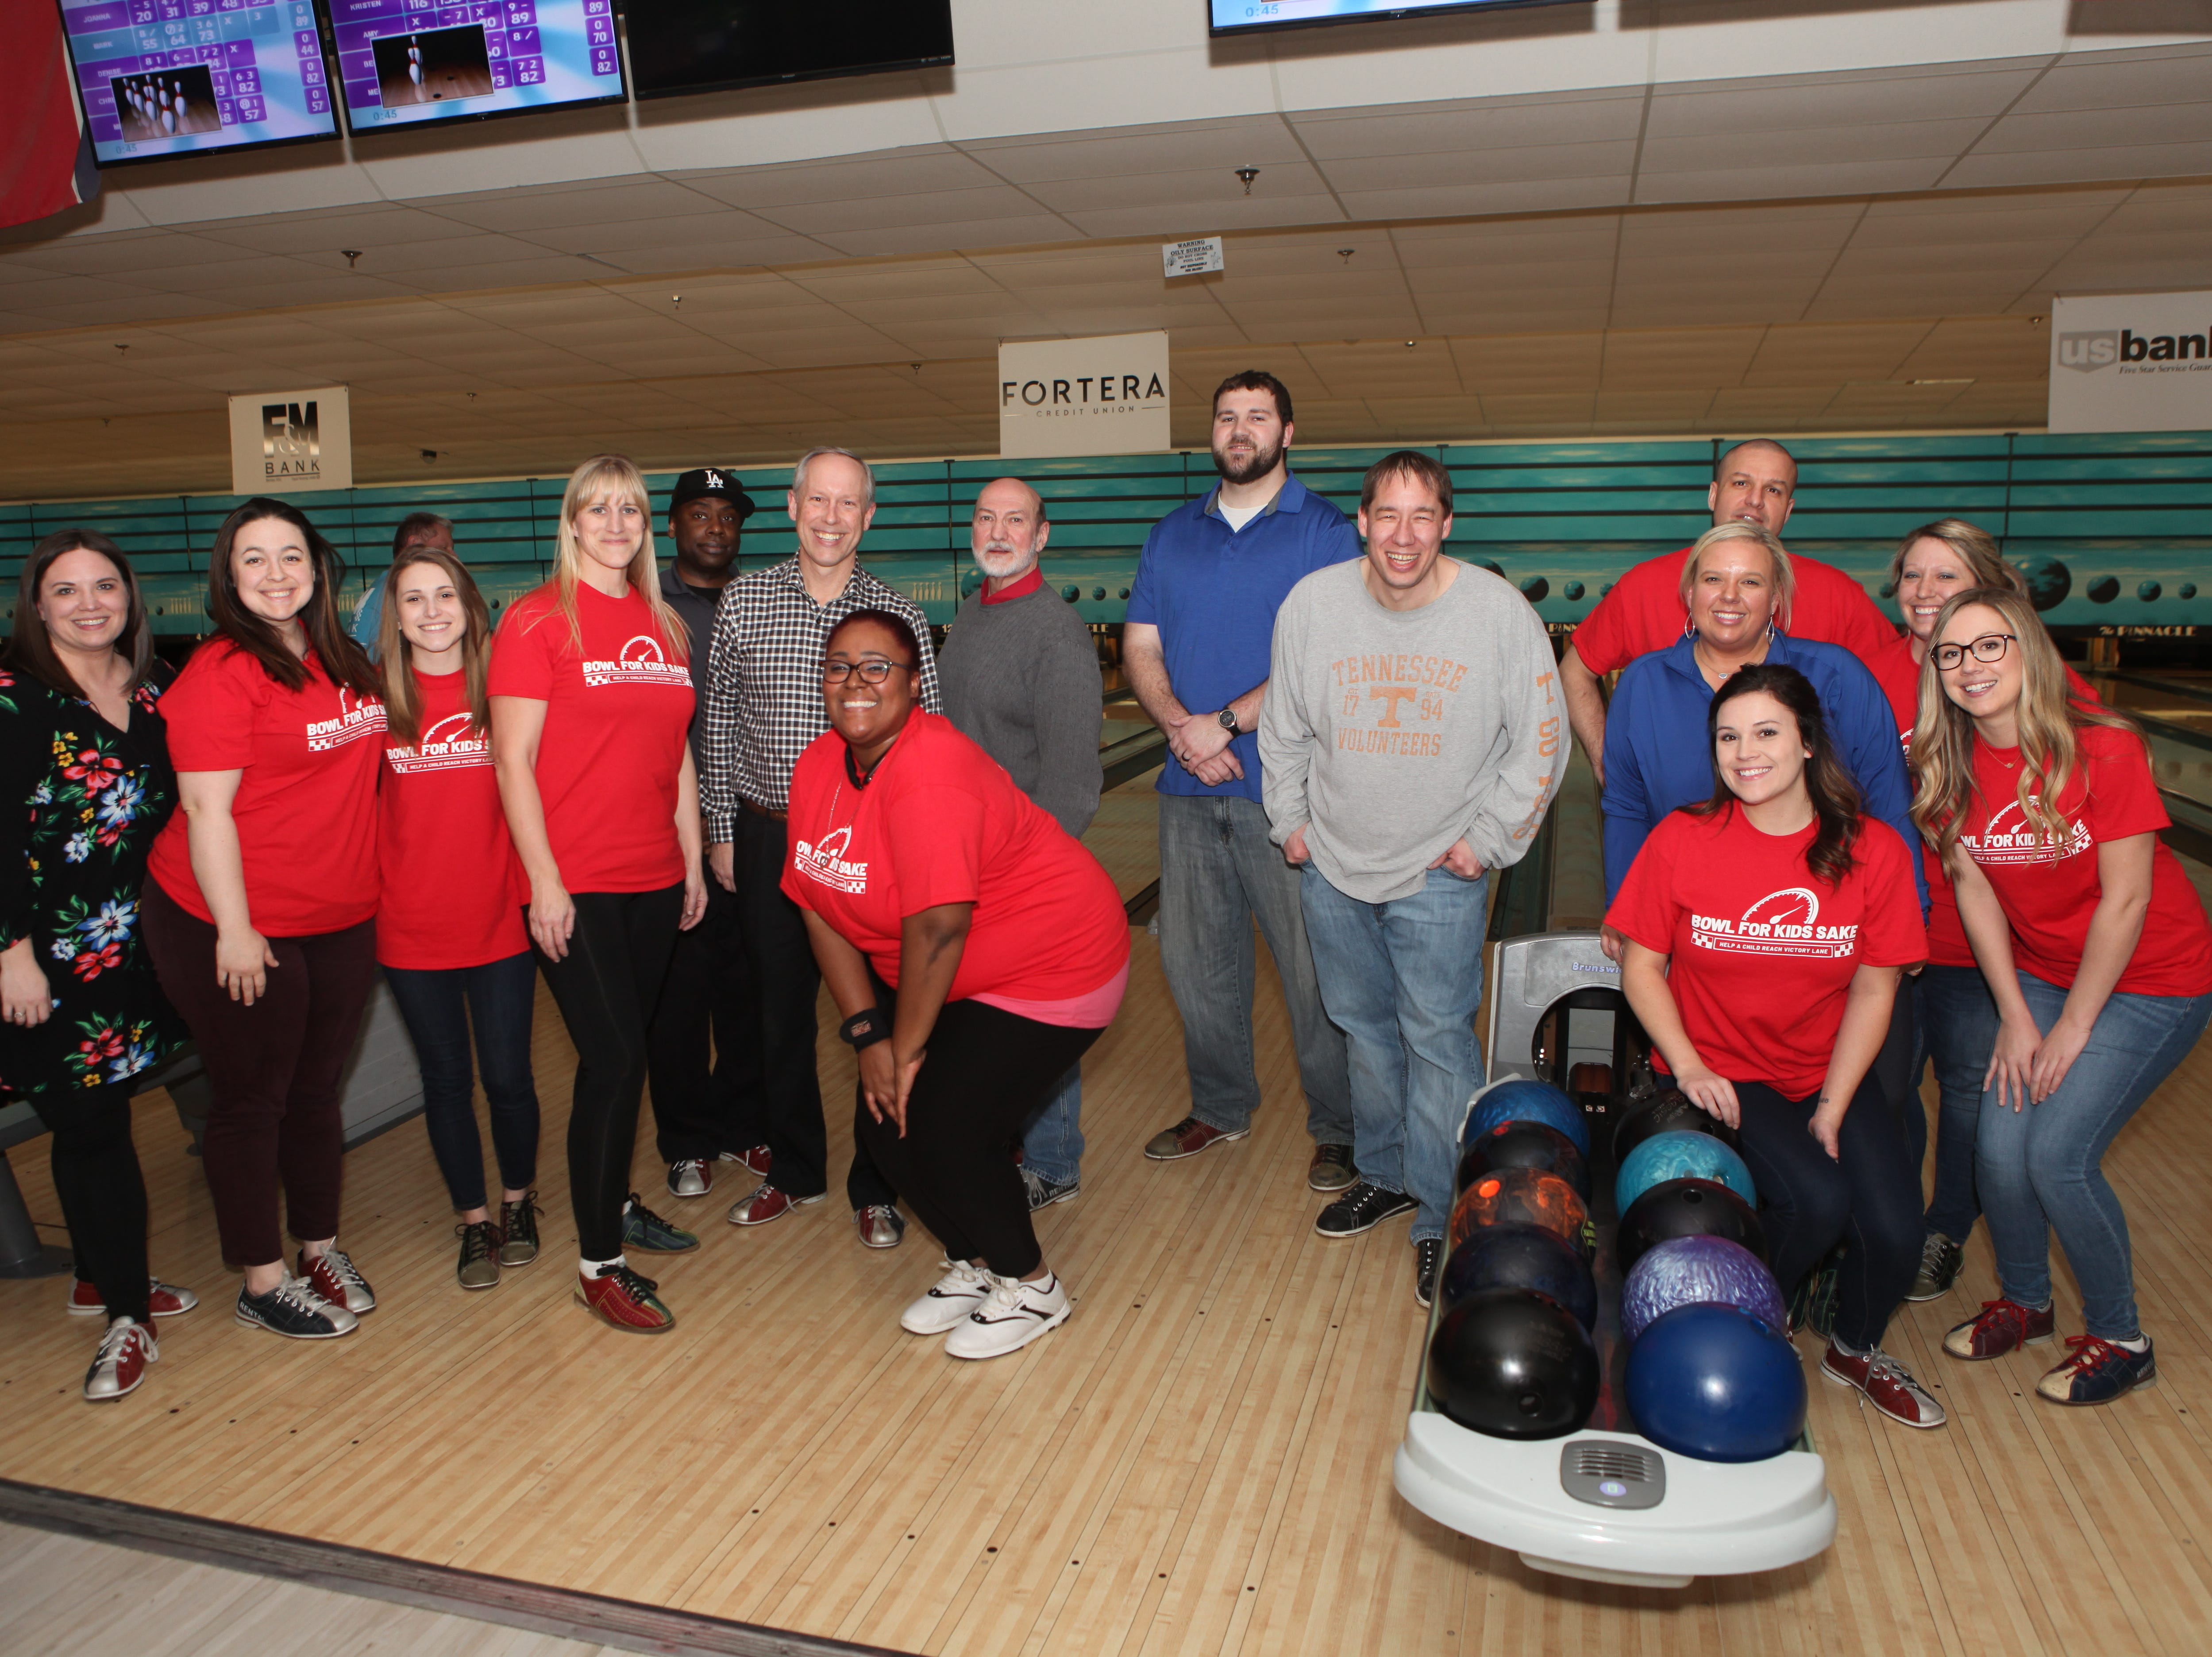 US Bank team members at the Big Brothers Big Sisters 2019 Bankers Challenge at the Pinnacle Family Entertainment Center on Tuesday, March 12, 2019.